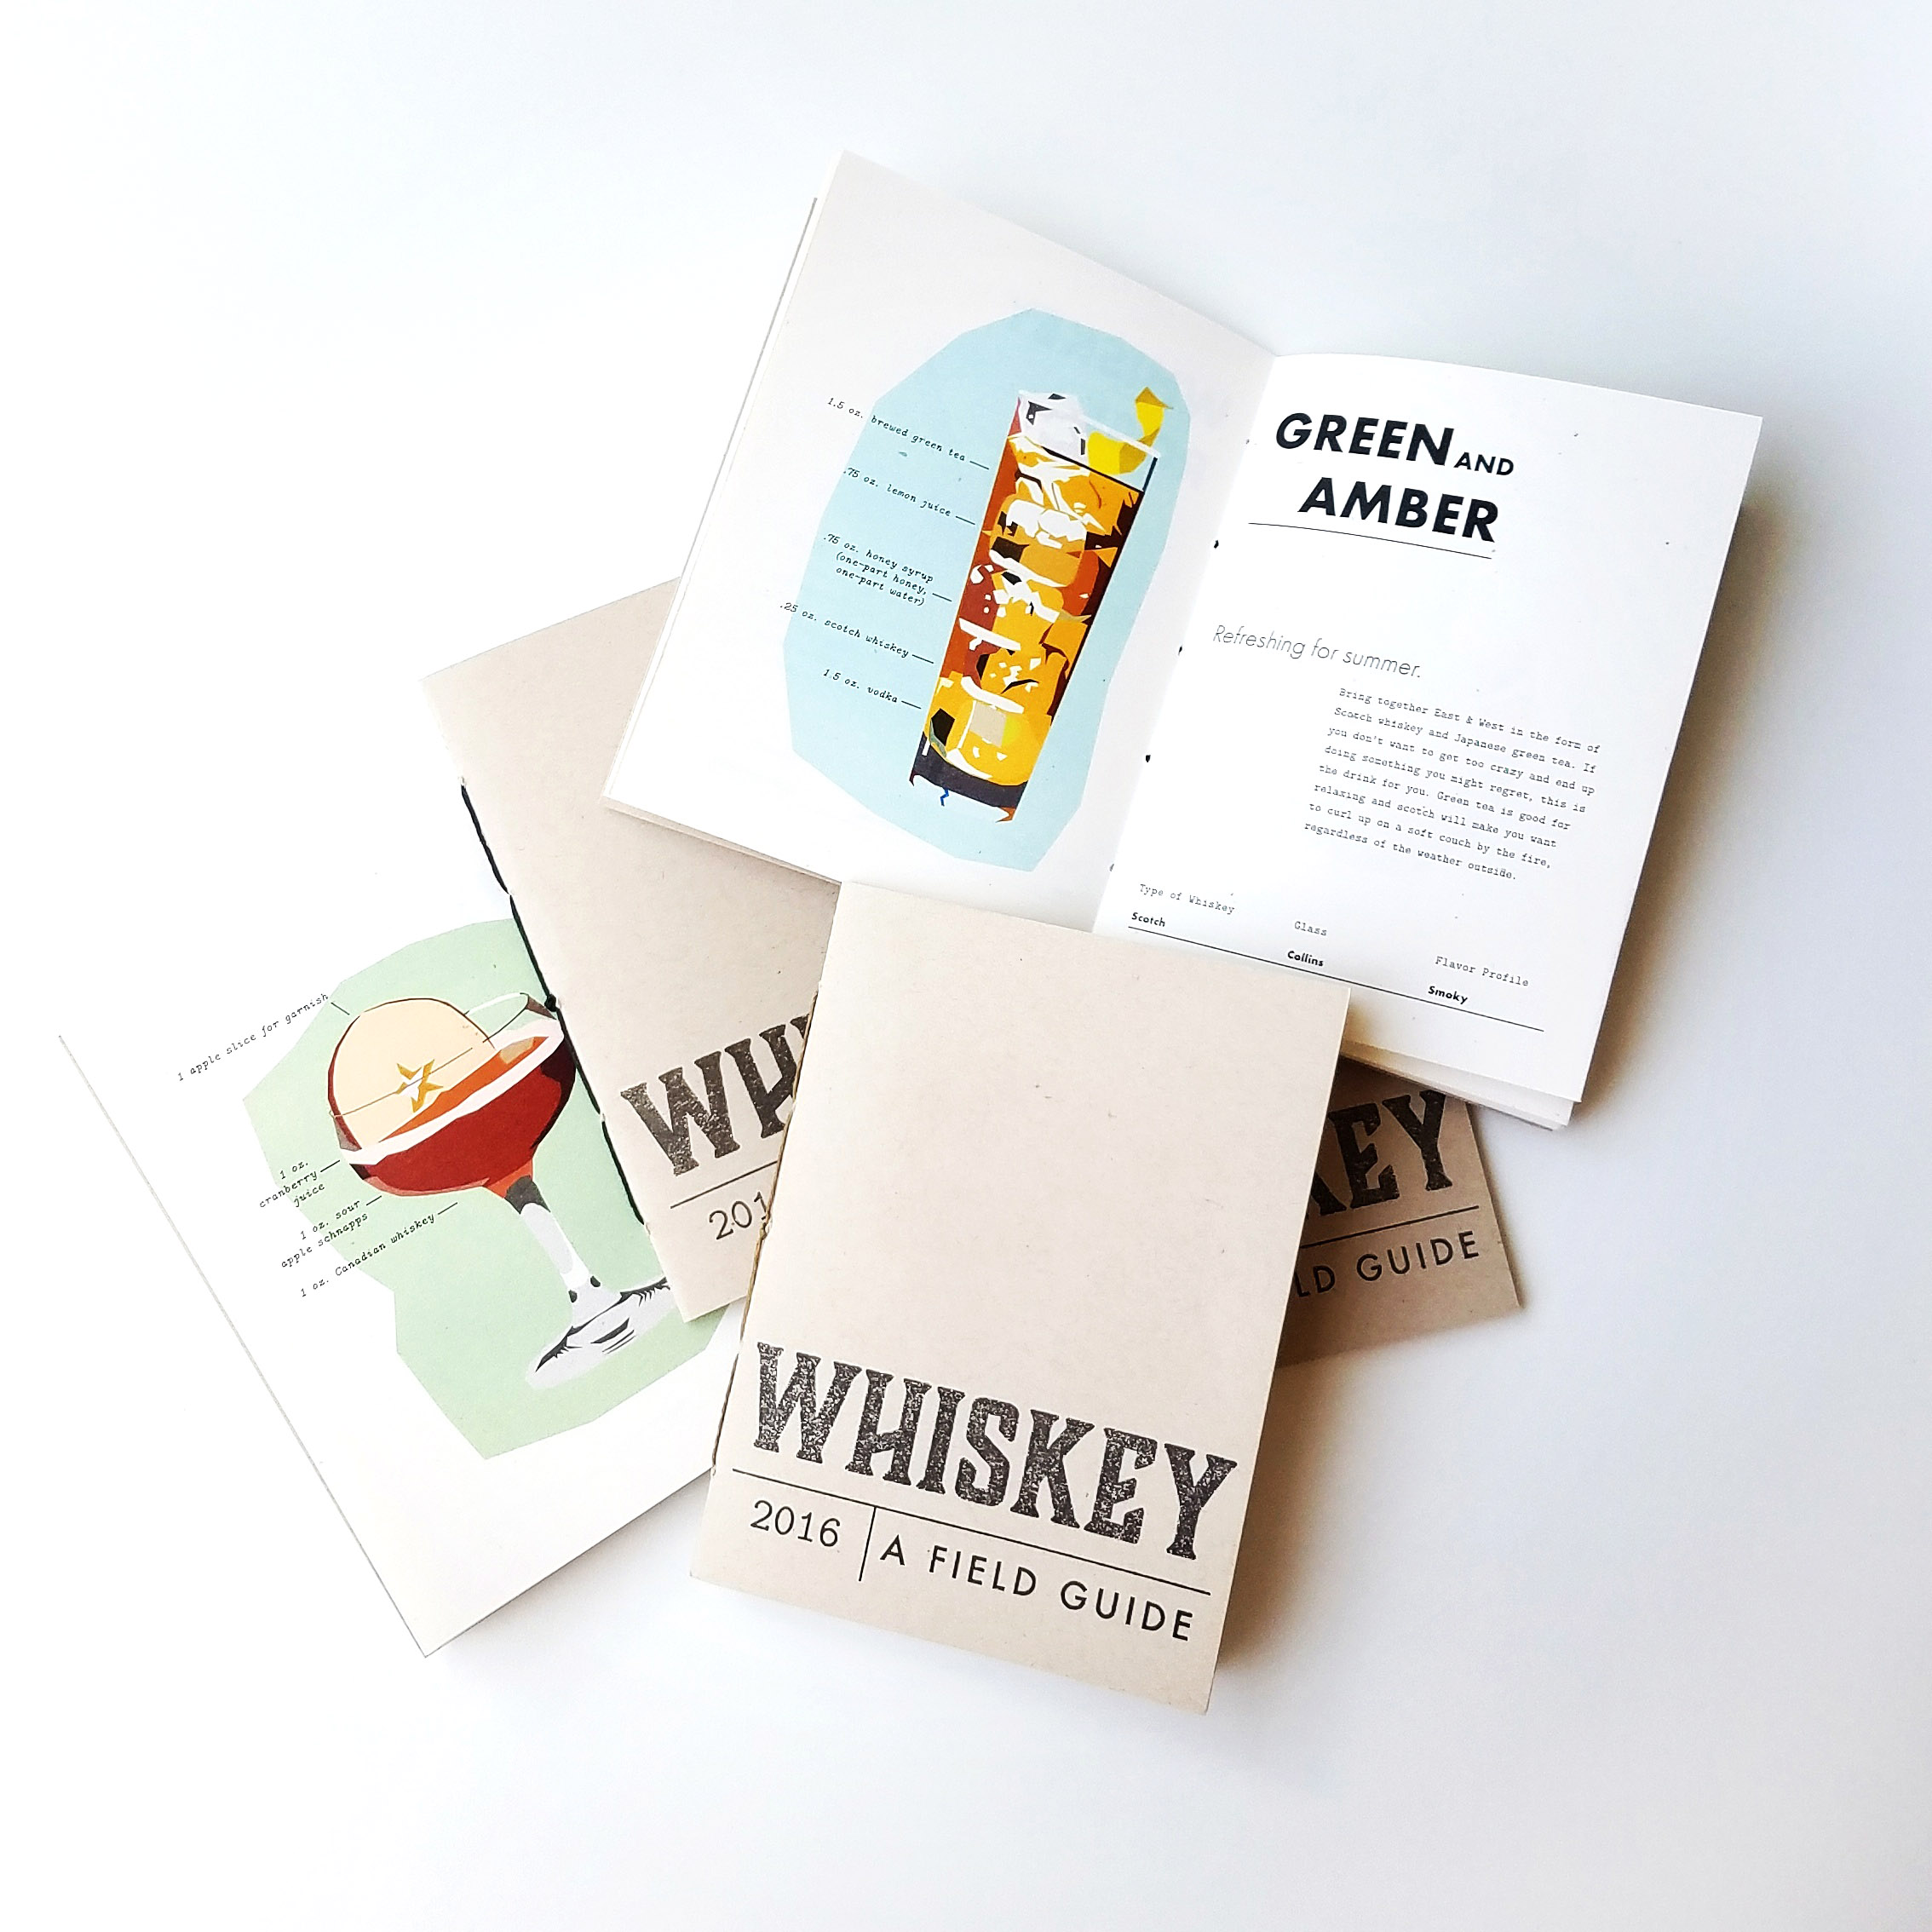 Whiskey Field Guide - A field guide for the whiskey curious.This gives a light-hearted look into a range of ways one can use and enjoy different kinds of whiskeys, and provides examples of the type of settings one might be in when taking pleasure in these cocktails.